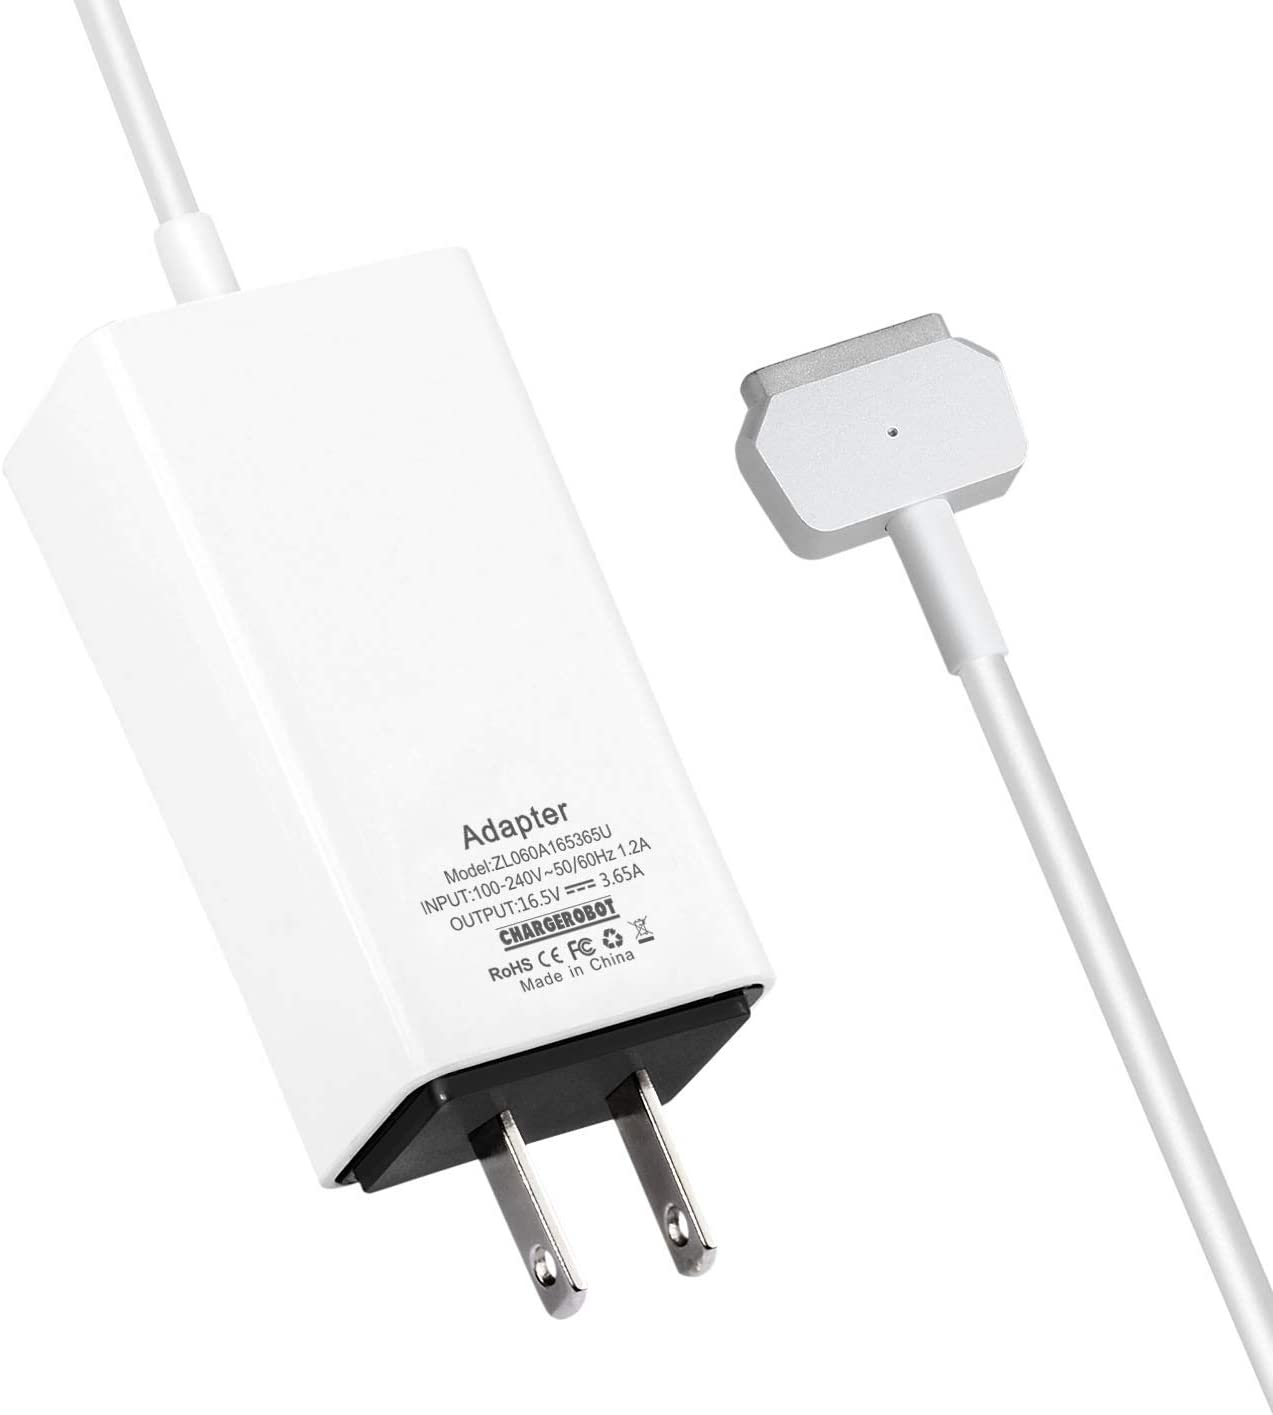 60W Mini Charger for MAC MacBook Pro 13 inches with Retina Display (Made After Late 2012),Replacement for Magnetic 2 T-tip Power Adapter